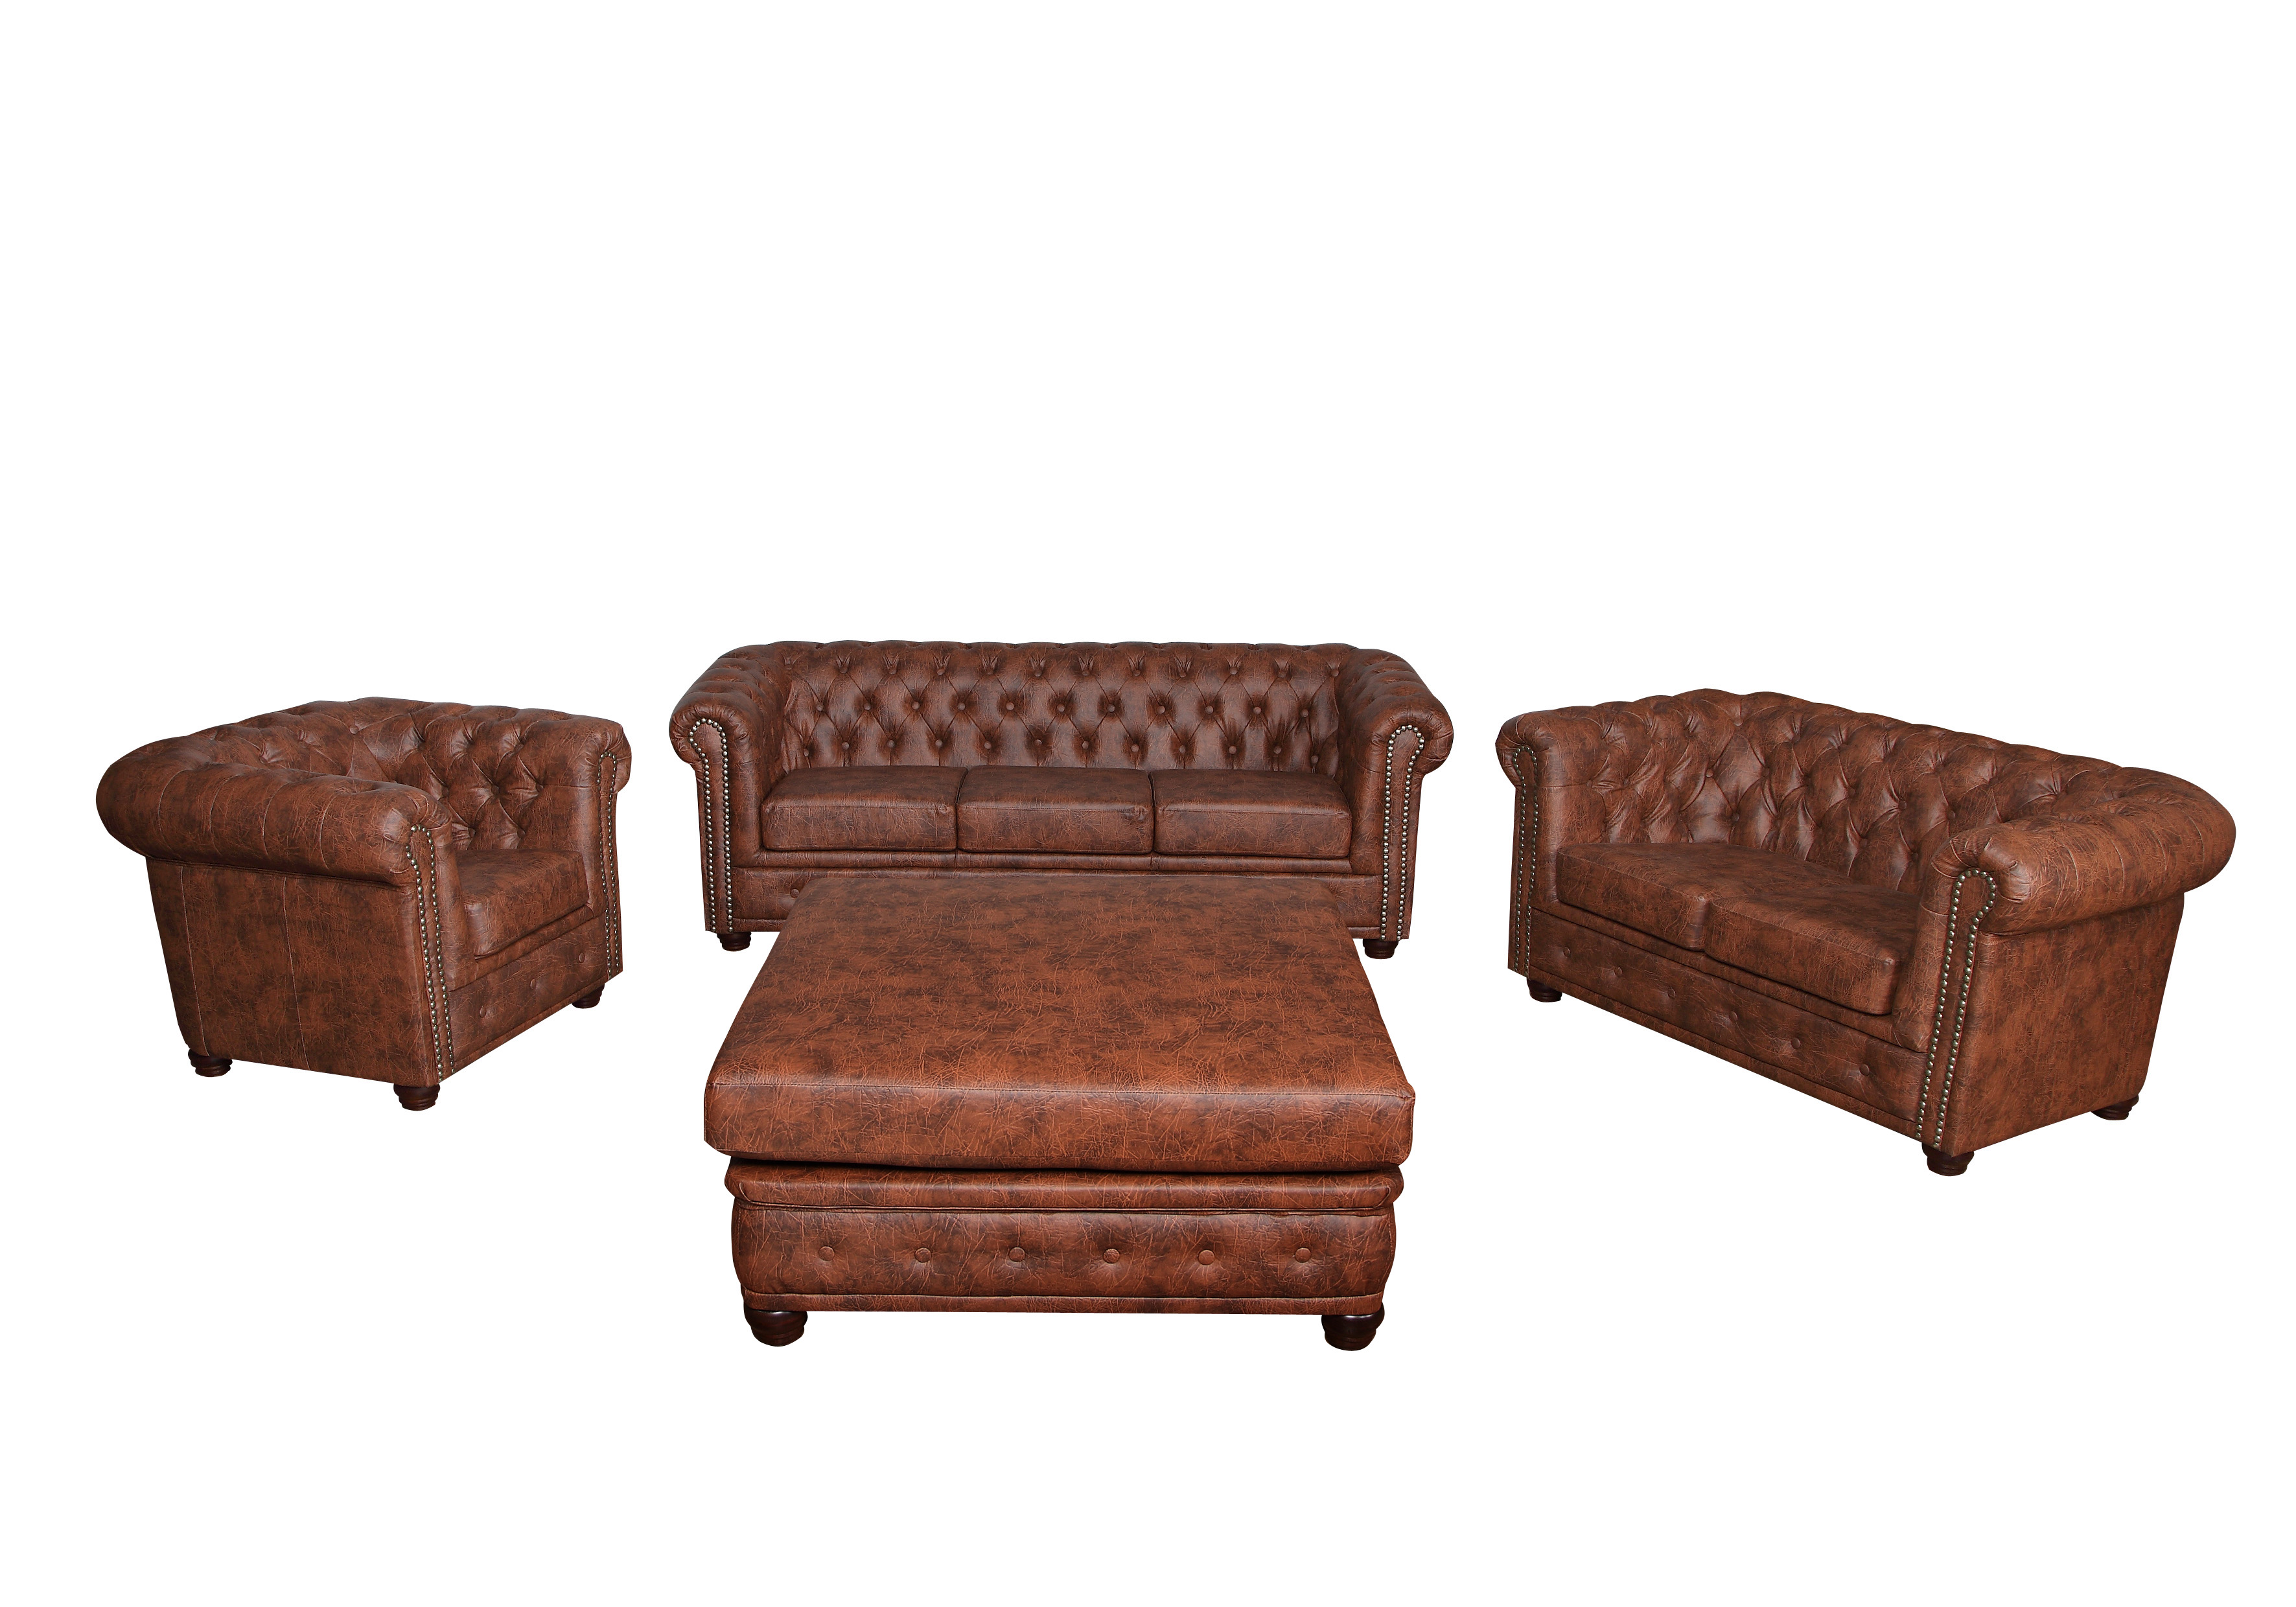 Chesterfield Sofa Und Hocker Chesterfield 3 43 2er Sitzer 43 Sessel 43 Hocker 43 Bett